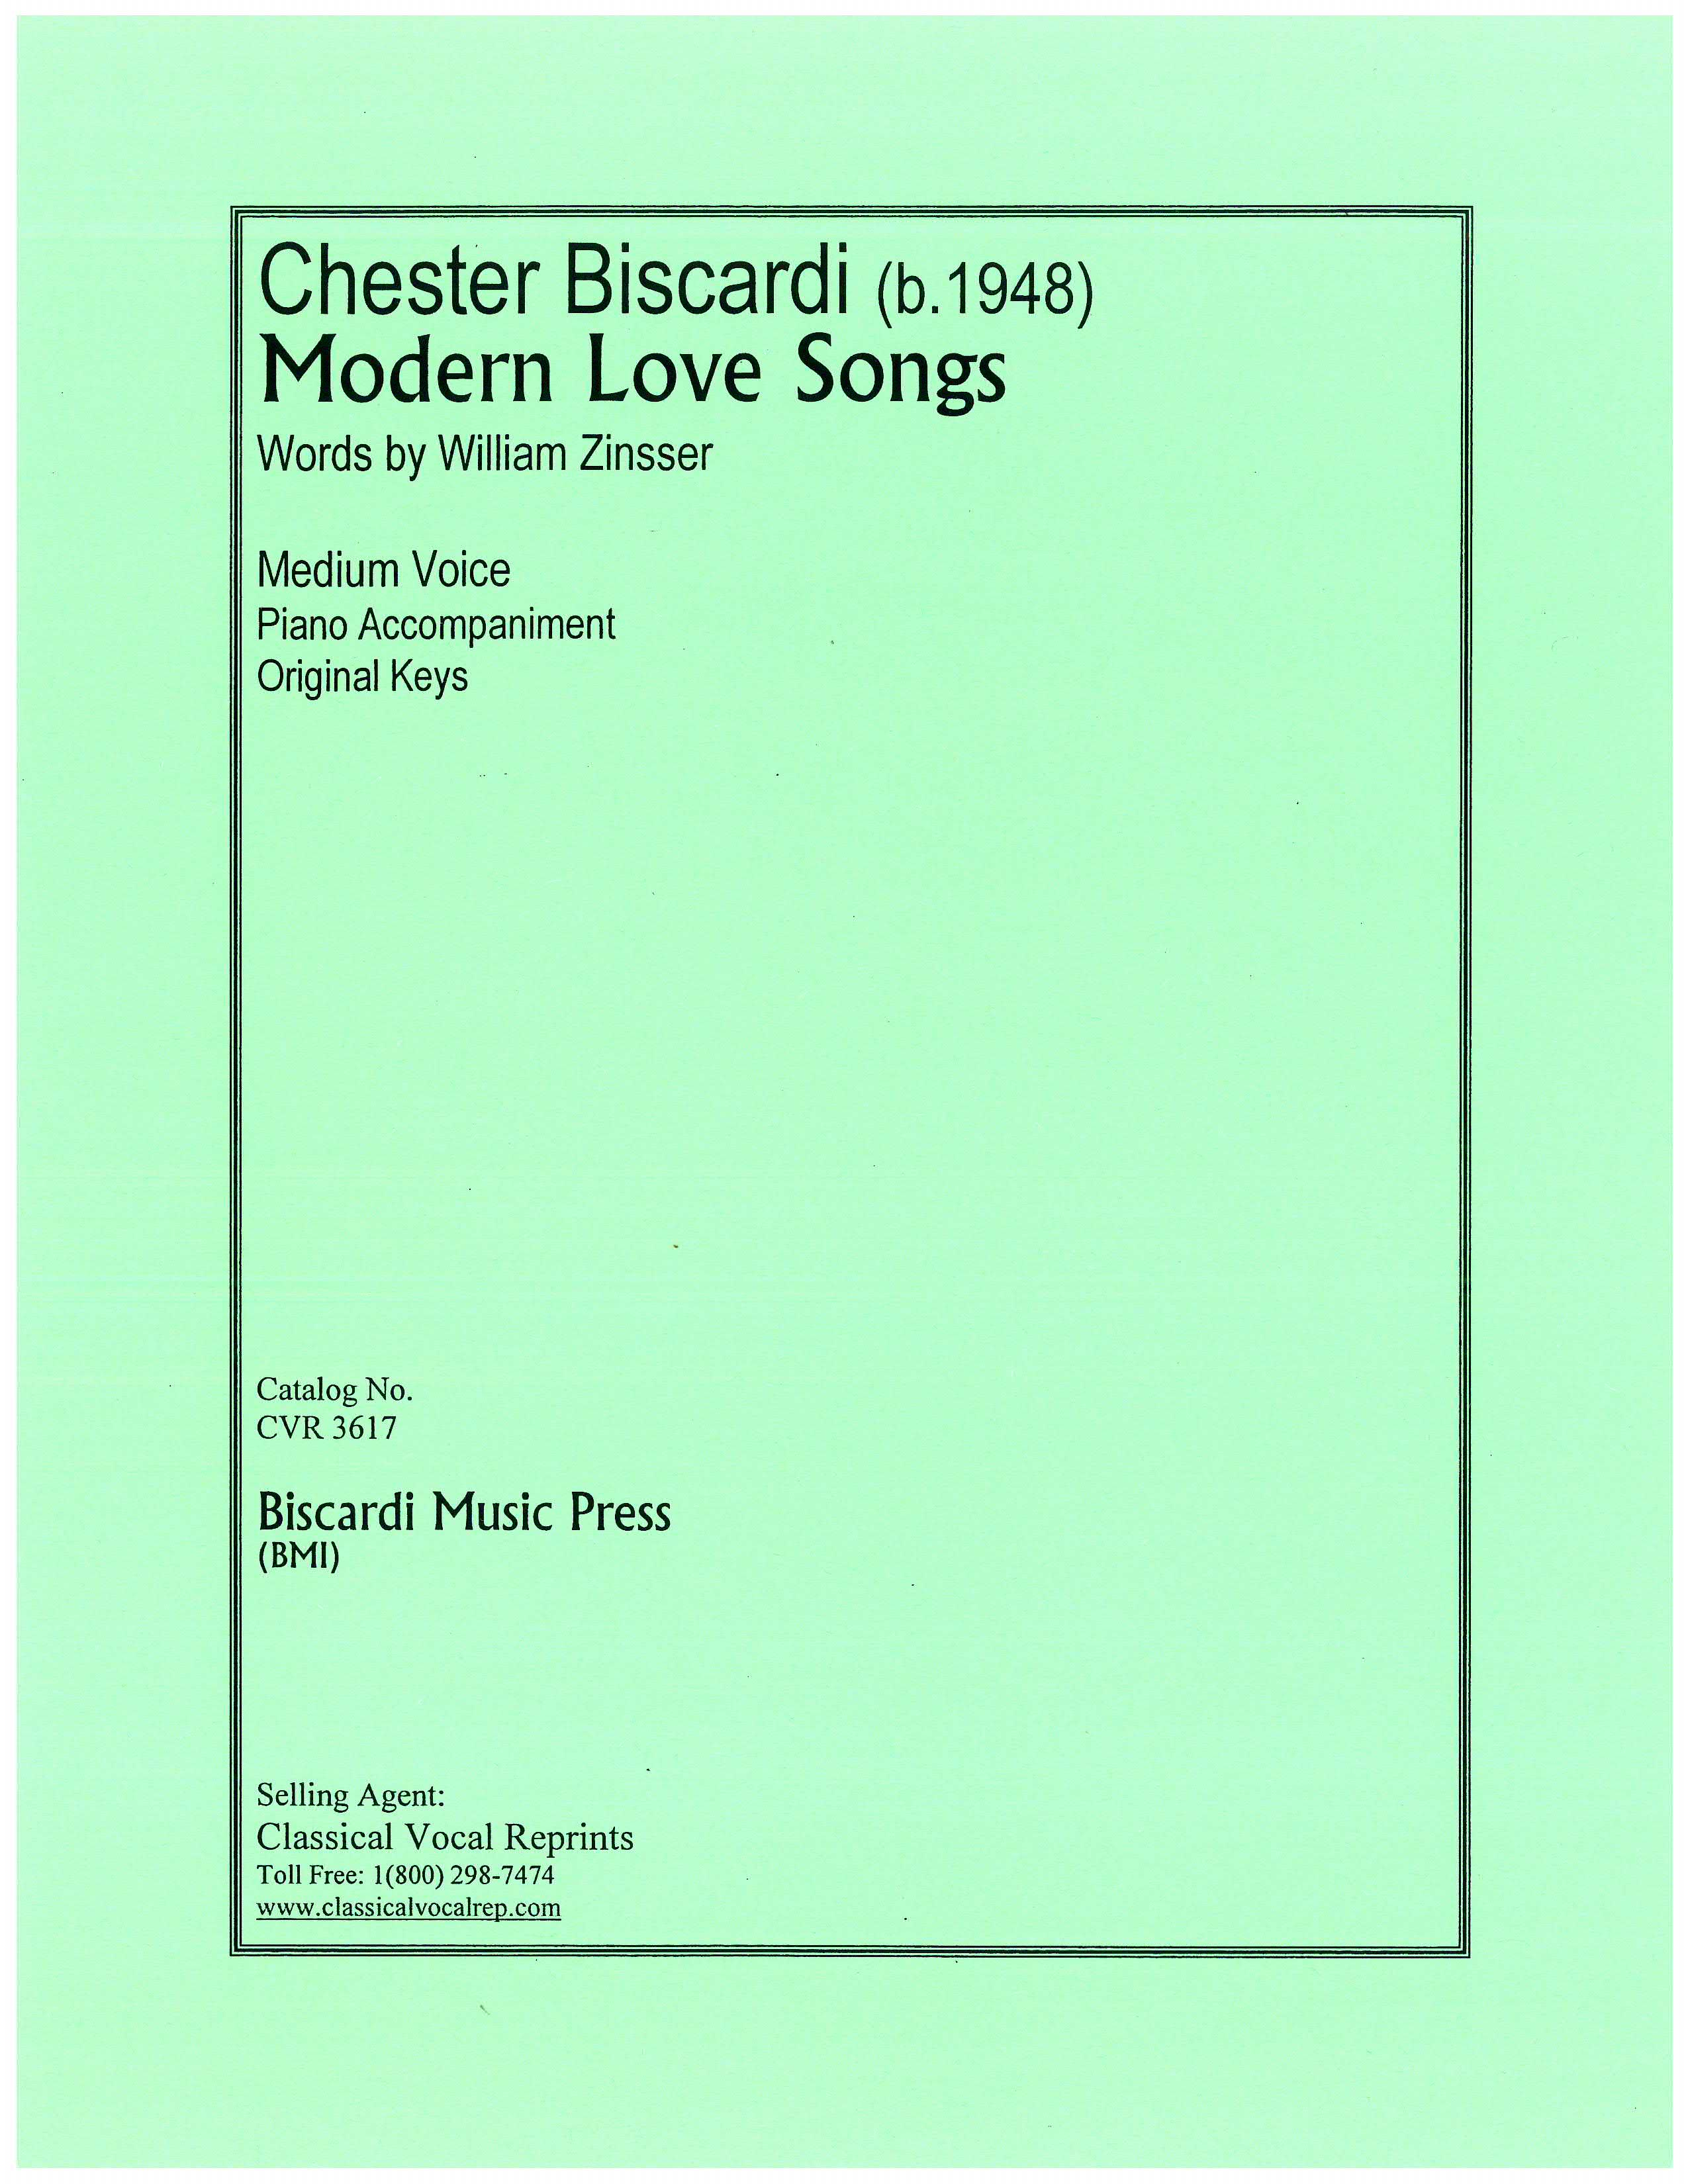 Modern Love Songs - Chester Biscardi, composer